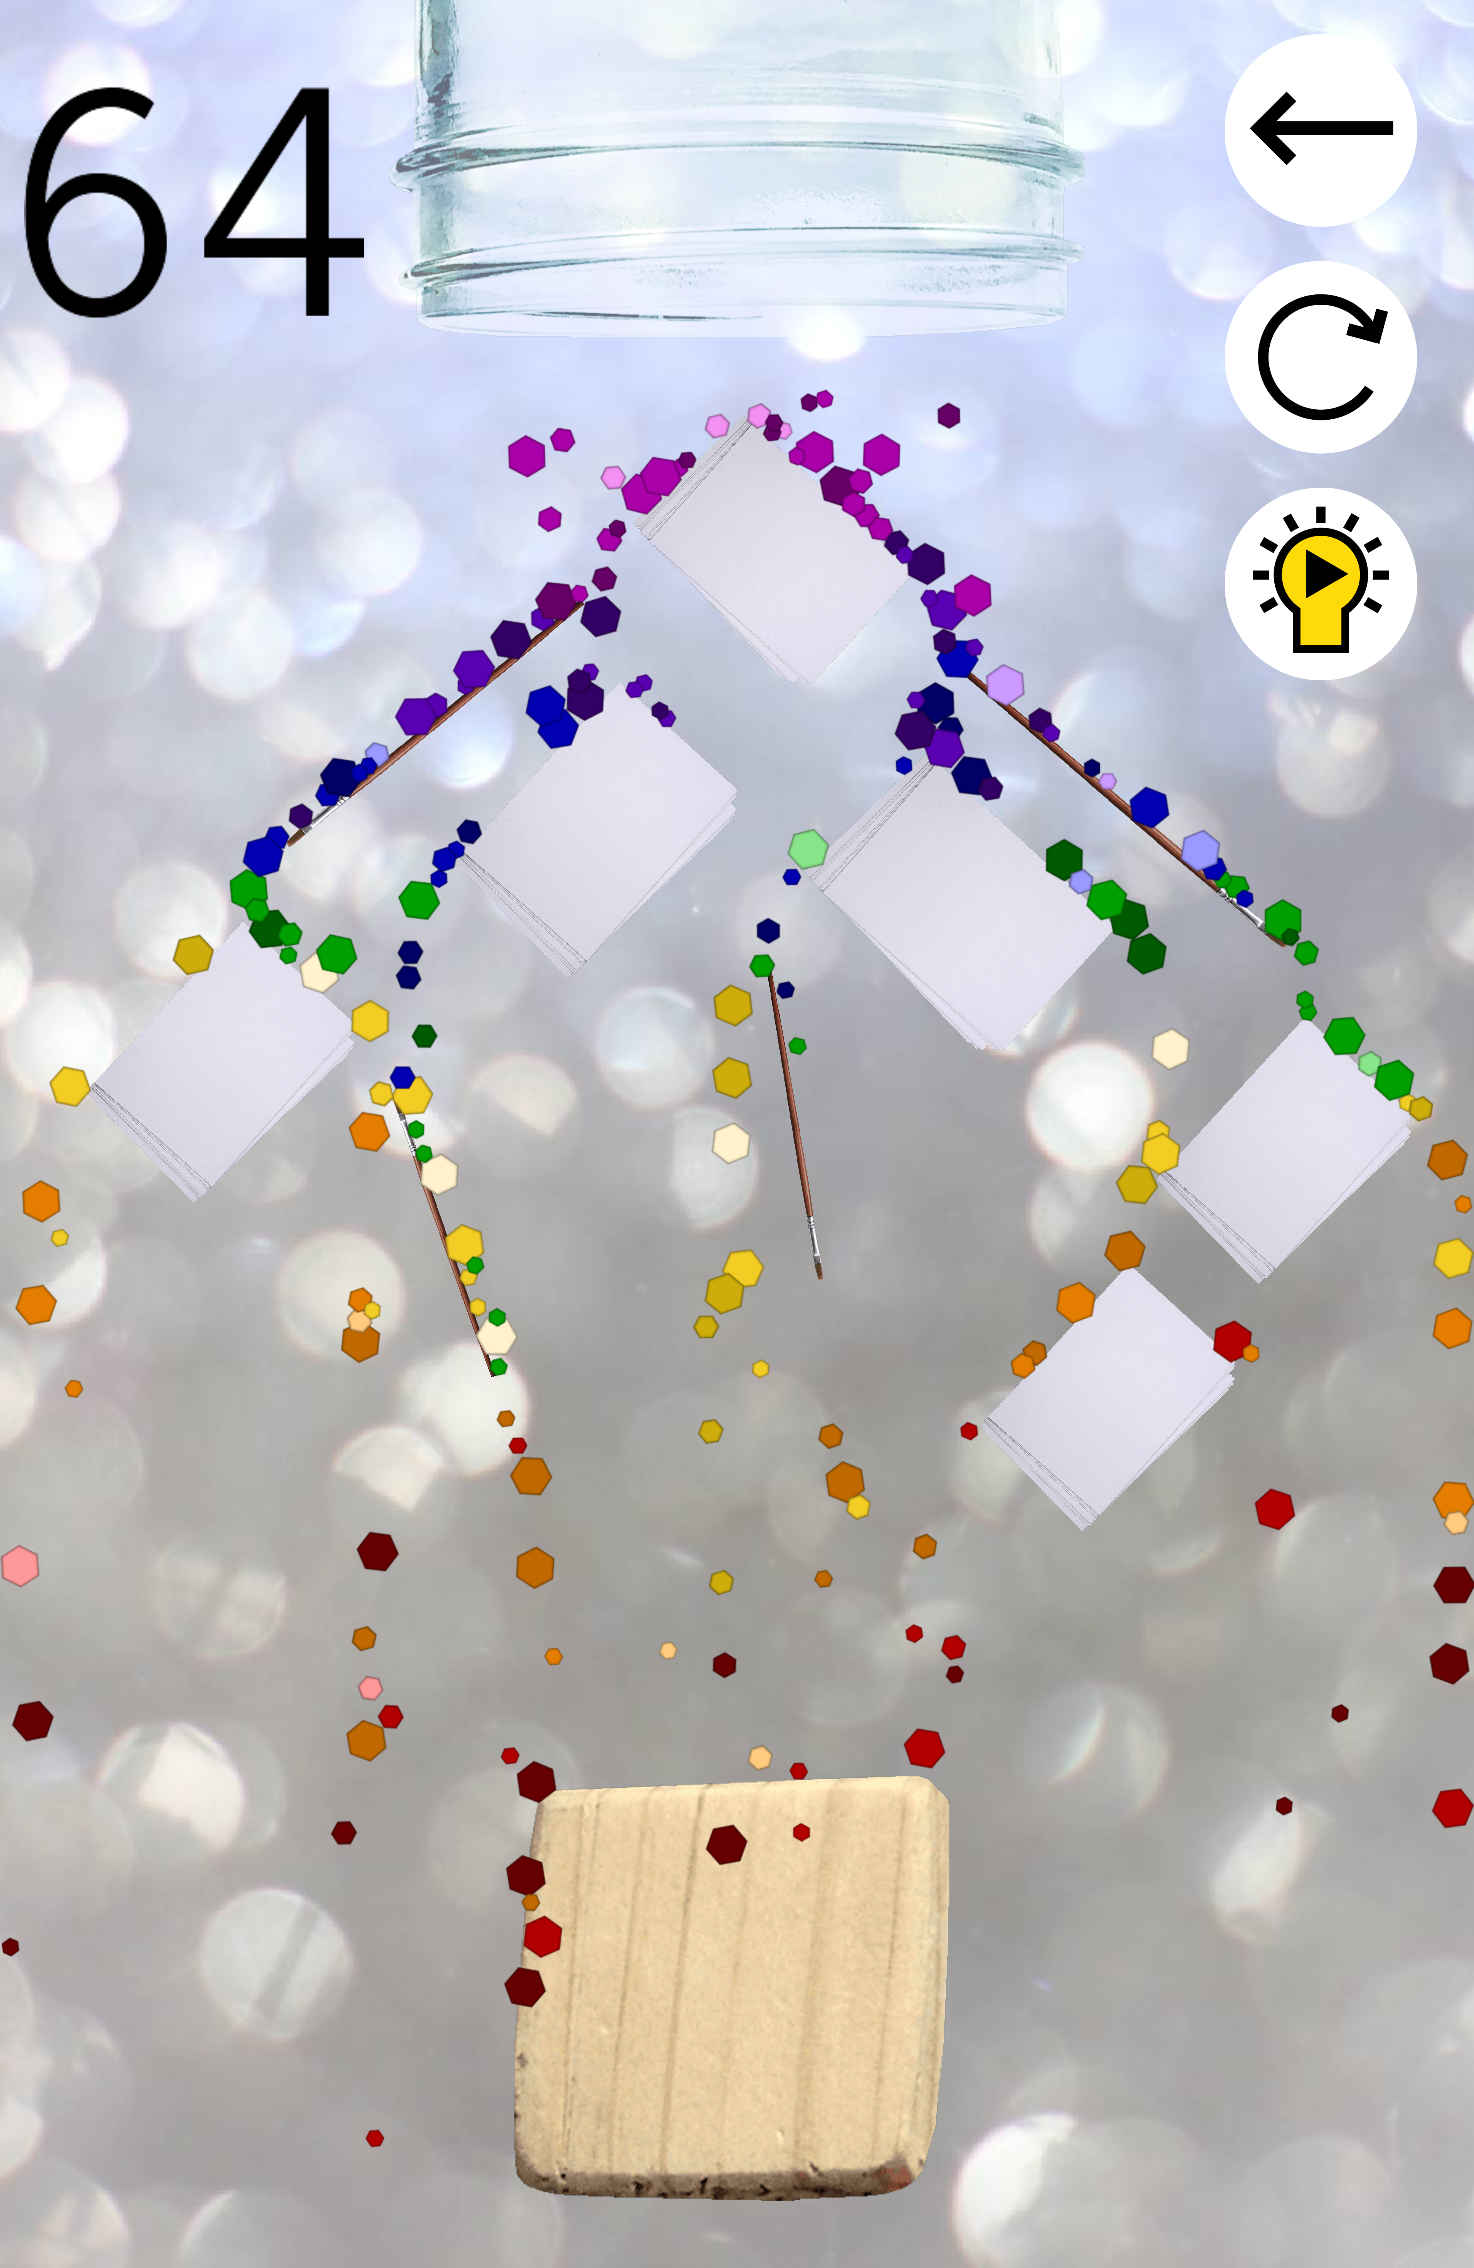 Pepper'd - Physics Puzzle Game